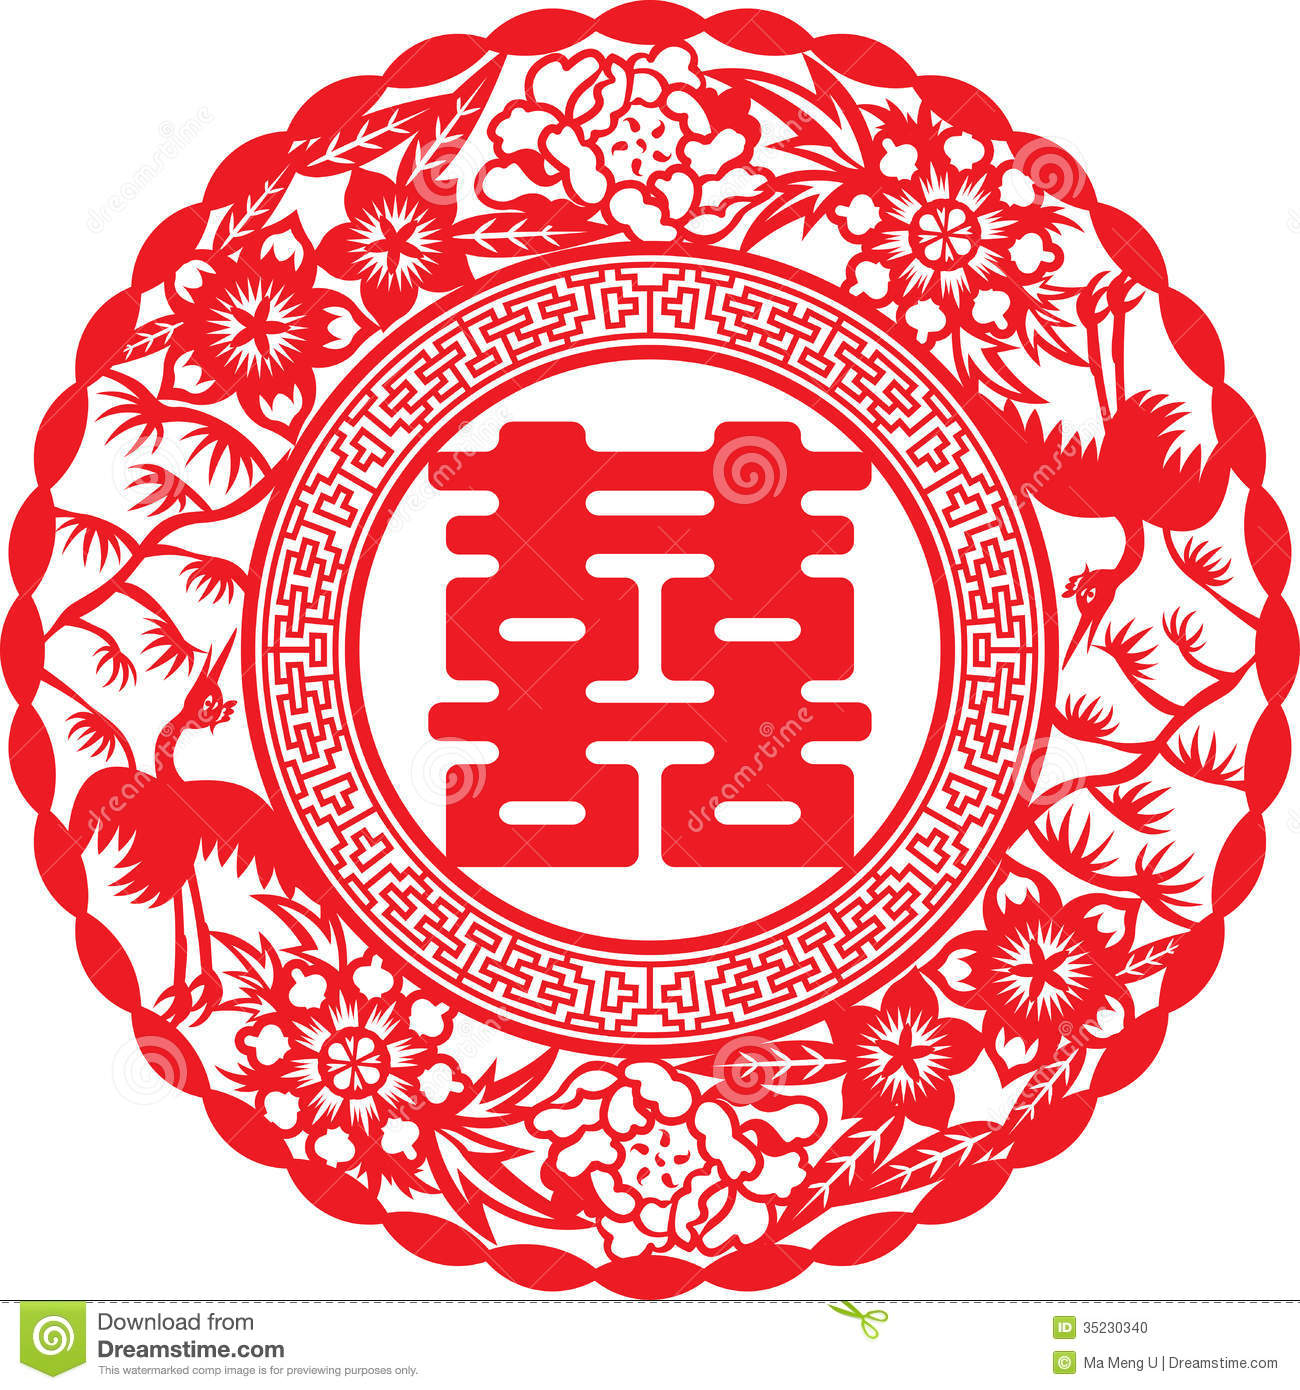 Double Happiness Graphic element for Marriage event decoration.